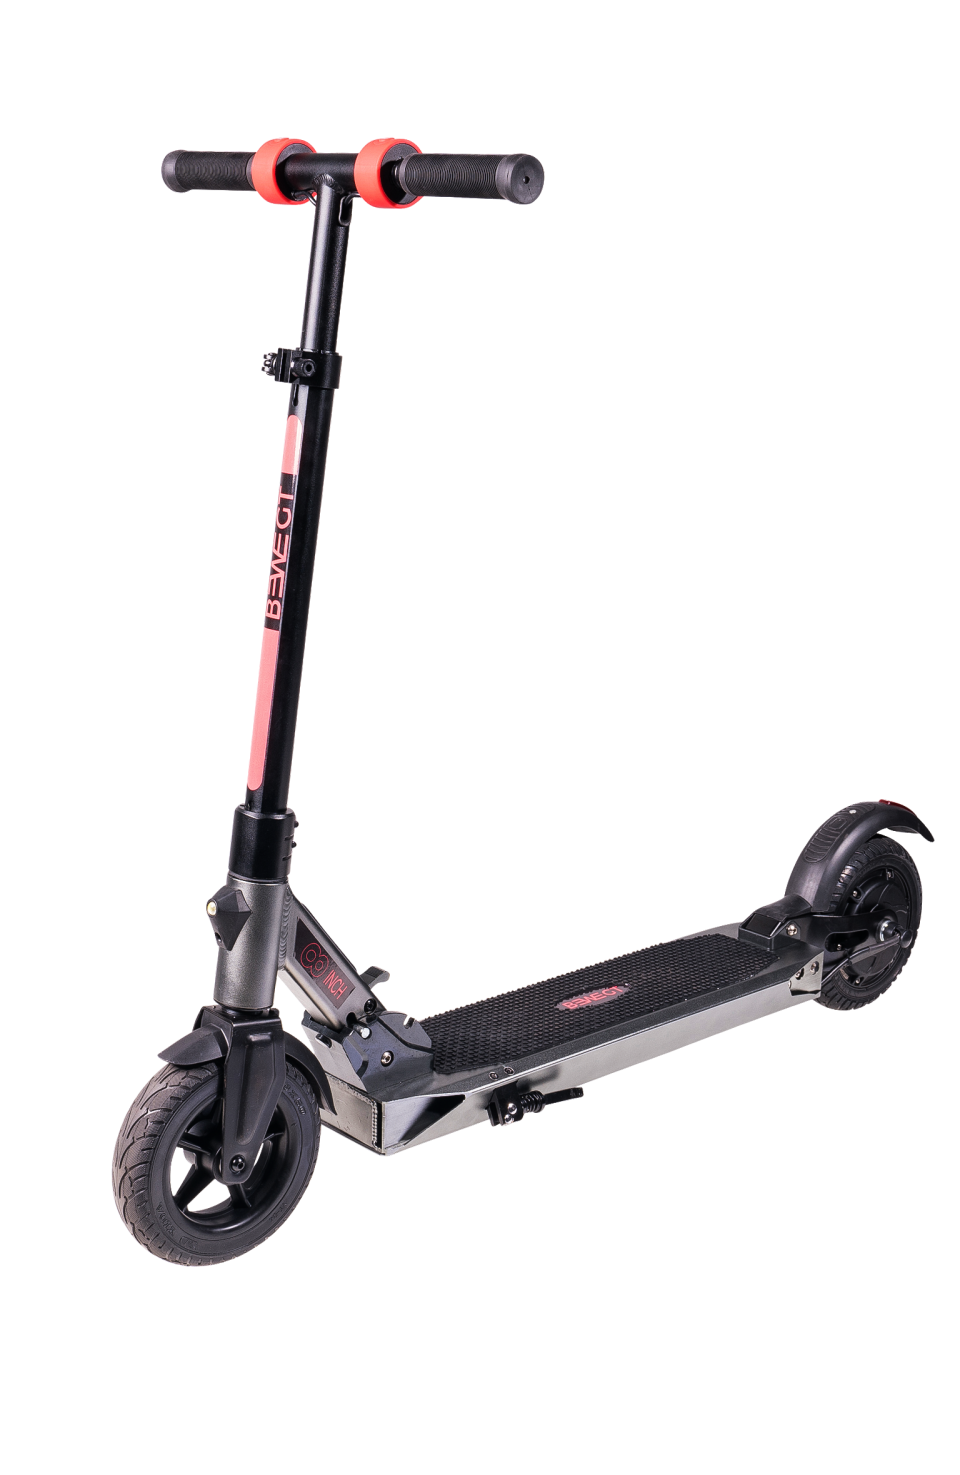 Black E-Scooter PNG Image